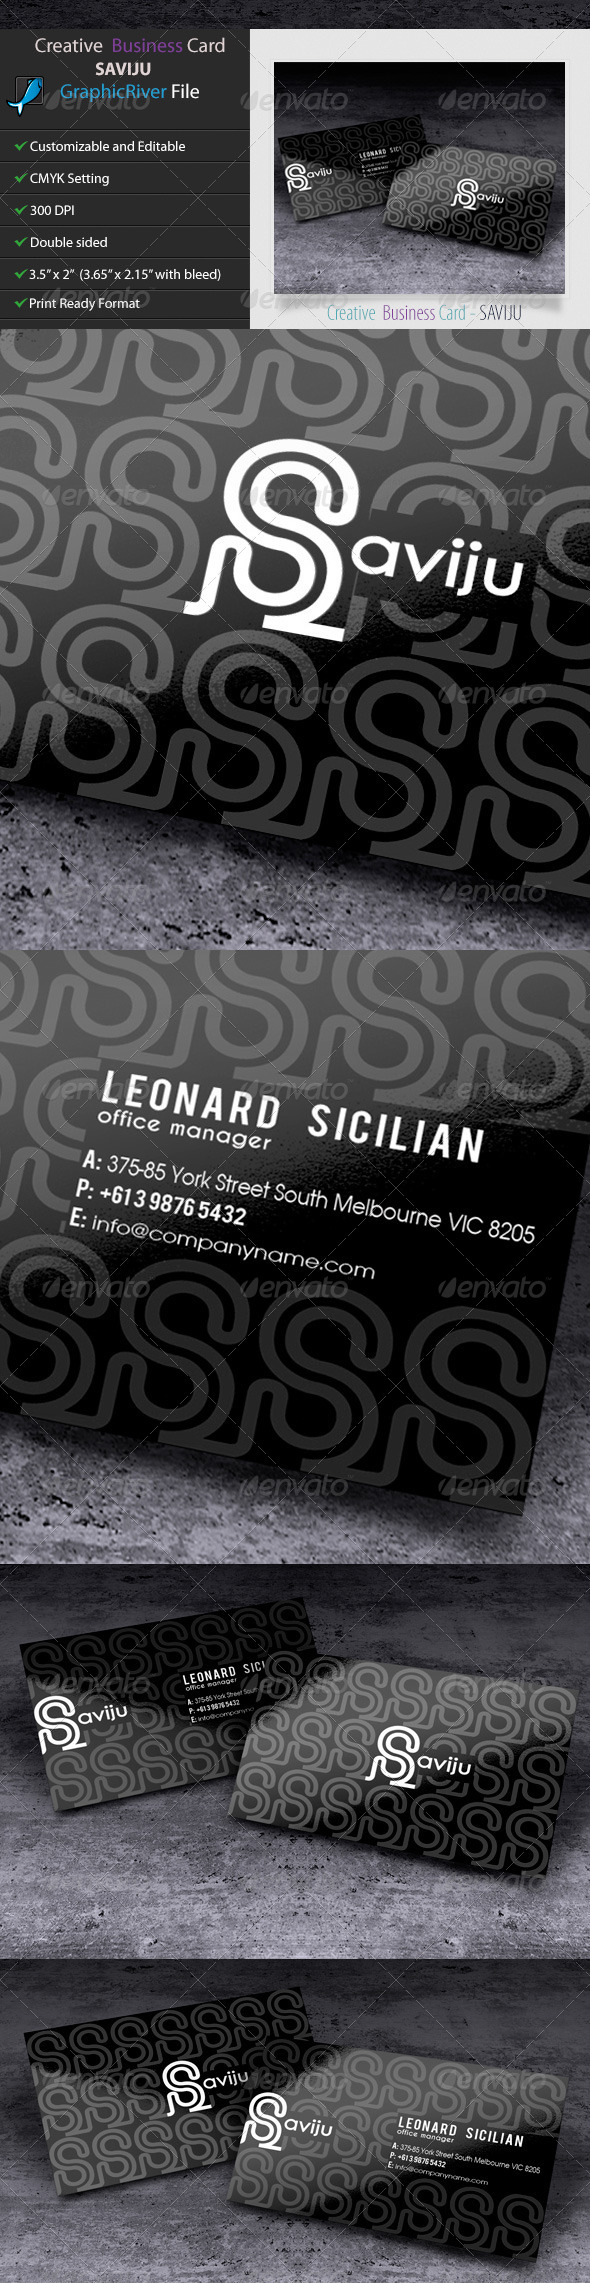 GraphicRiver Creative Business Card SAVIJU2 5592992